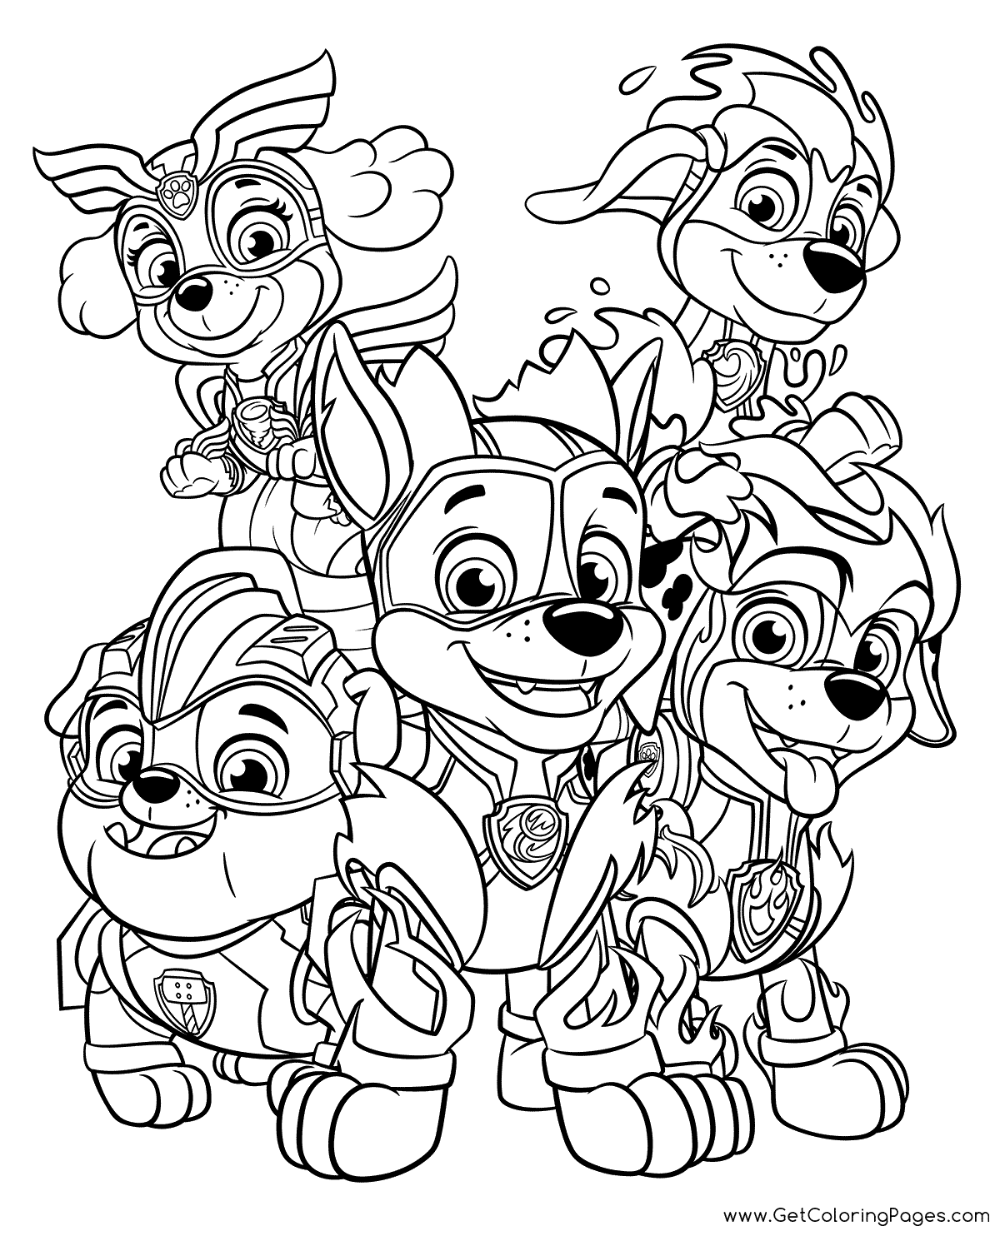 Download Now This Free Coloring Page Or Print And Color For Your Kids Or Friends Paw Patrol Coloring Paw Patrol Coloring Pages Paw Patrol Super Pup